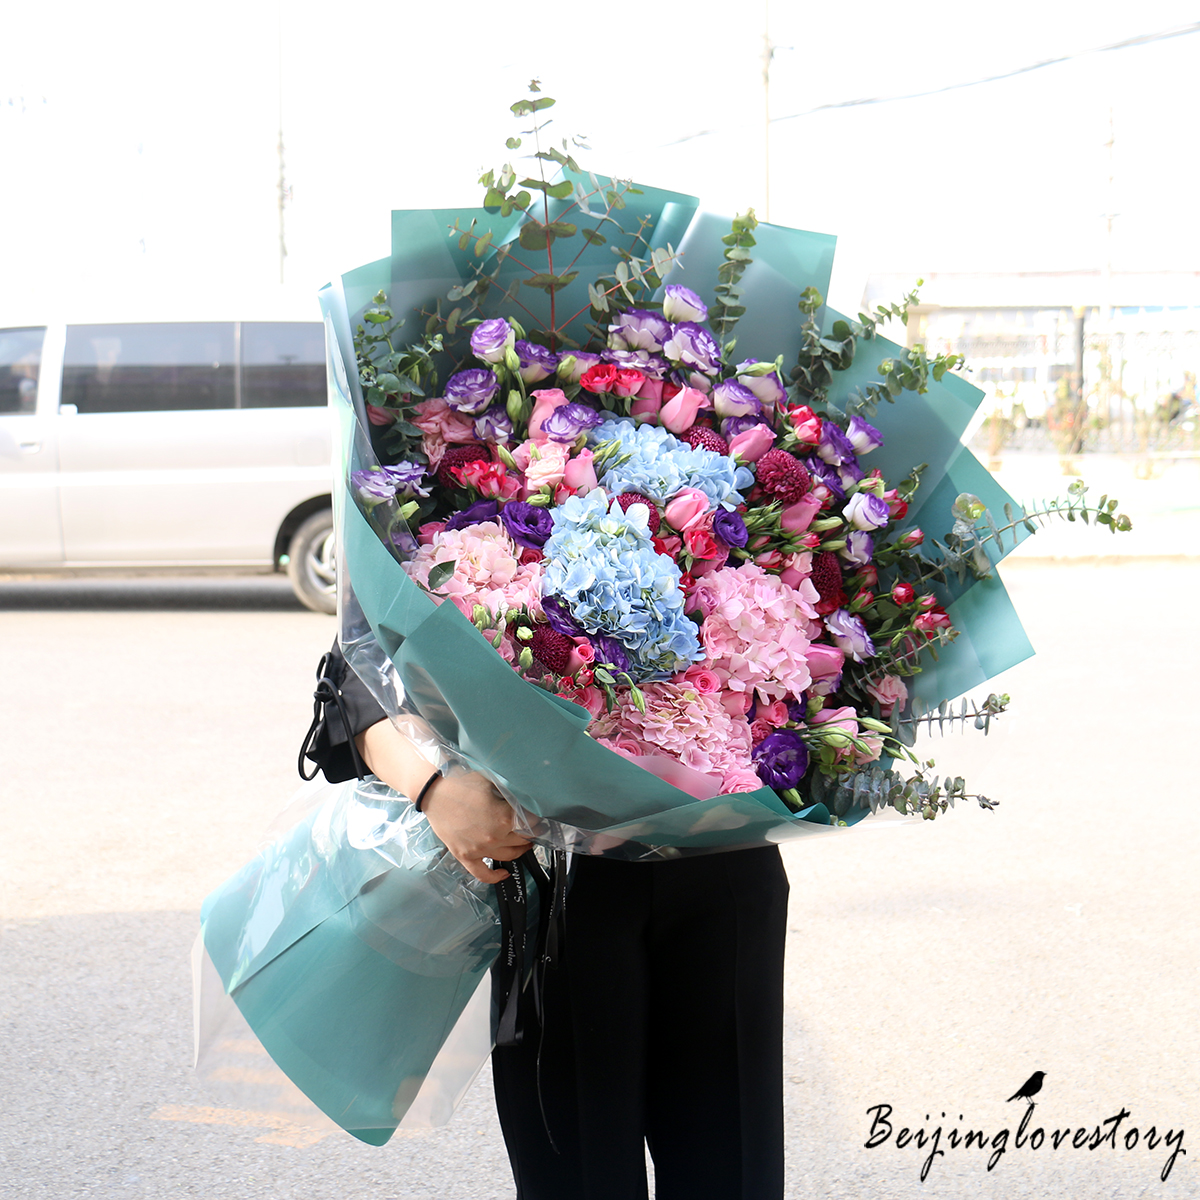 Usd 51661 beijing birthday flower delivery with the city teacher big bouquet candy bubble big bouquet white hydrangea big bouquet pink big bouquet sunflower big bouquet hydrangeaflower of the town shop izmirmasajfo